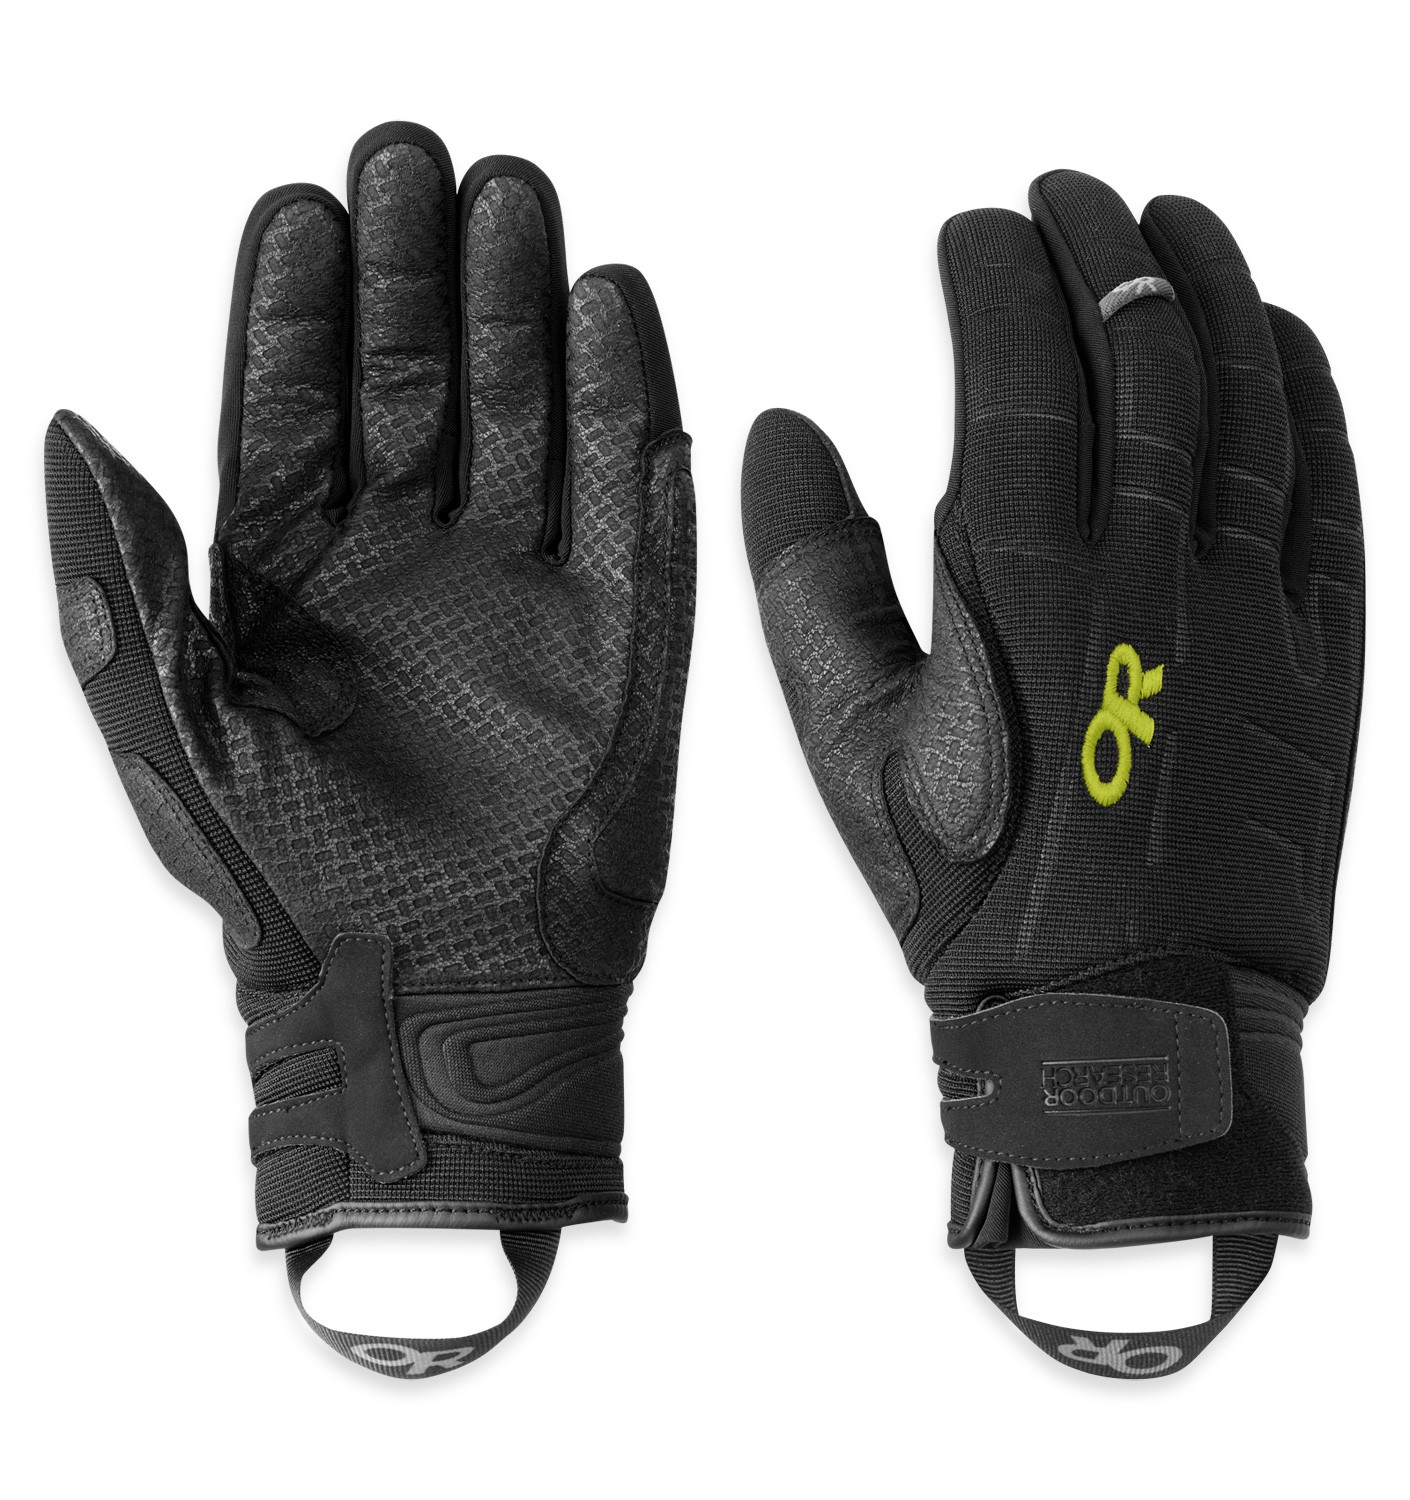 f883e48c615 Outdoor Research Alibi II Gloves Review